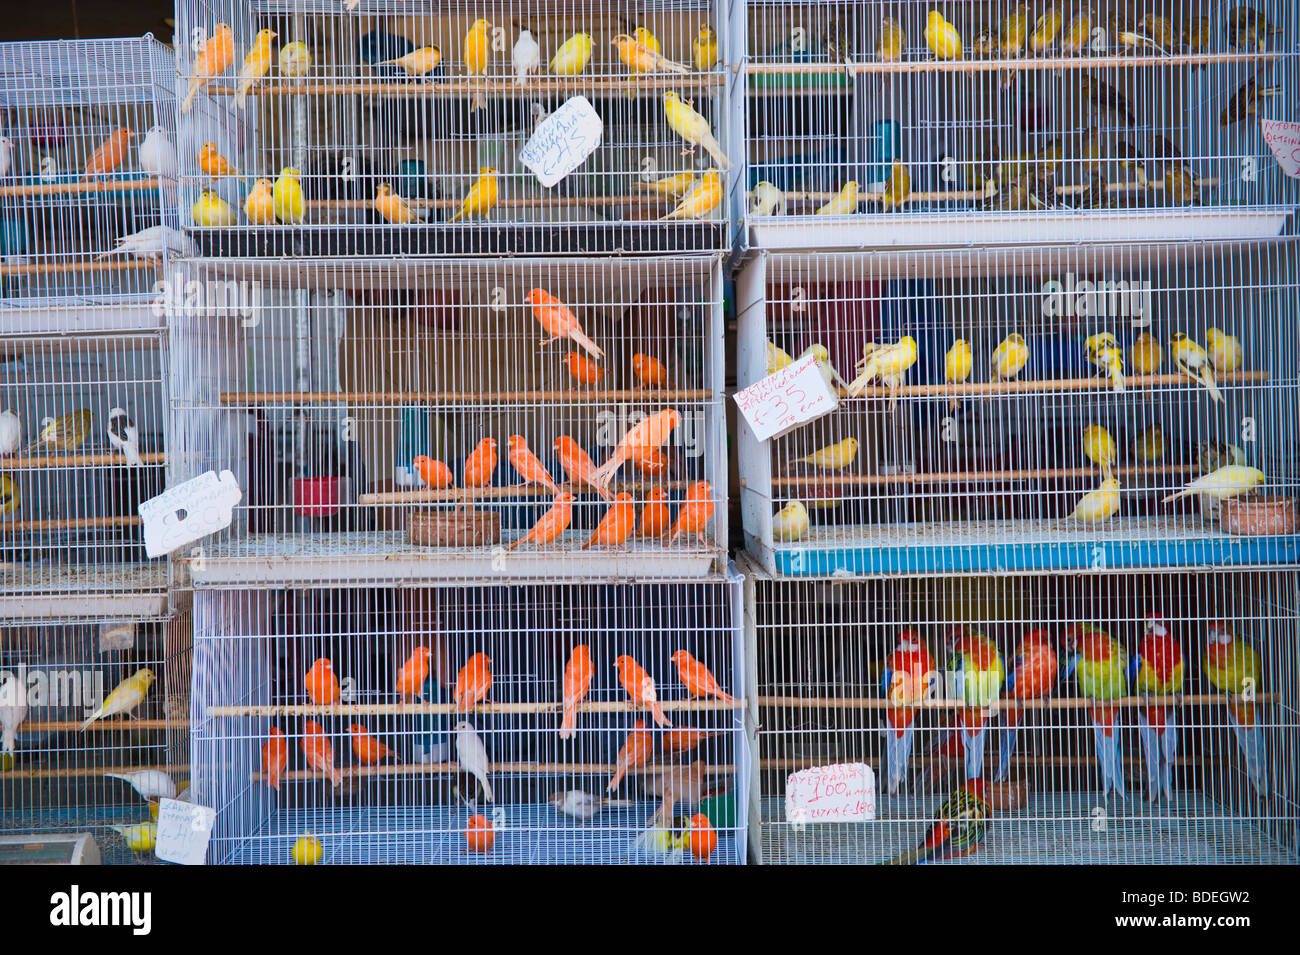 caged birds for sale at annual festival market at st gerasimos